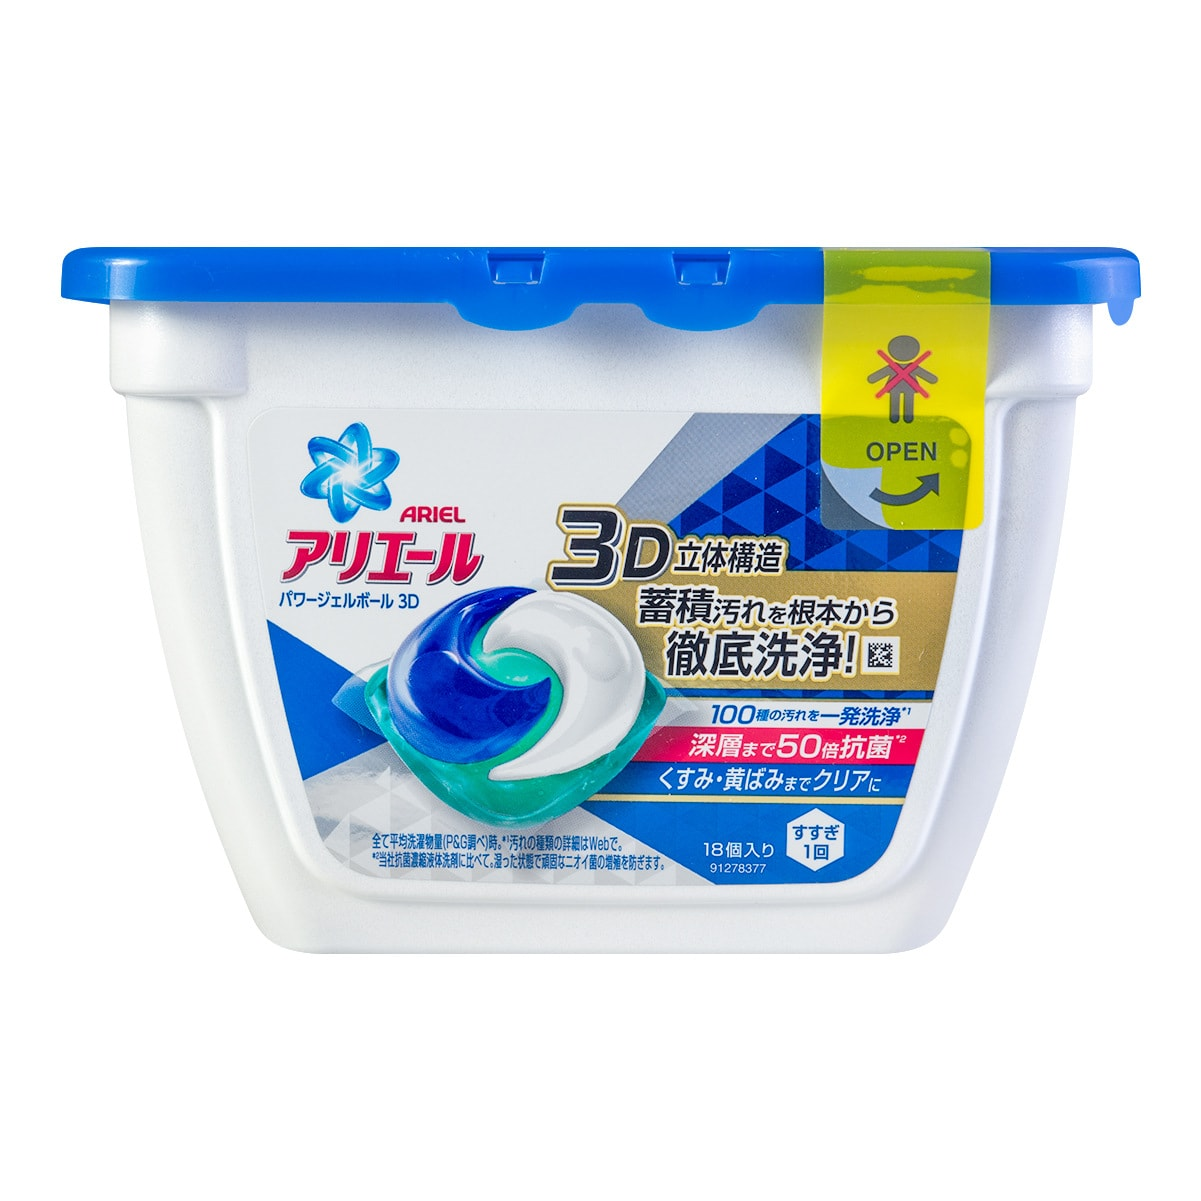 P&G Japan Laundry Wash Anti Bacterial Odor Free Detergent 3D Gel Ball #Elegant Flower 18tablets 356g